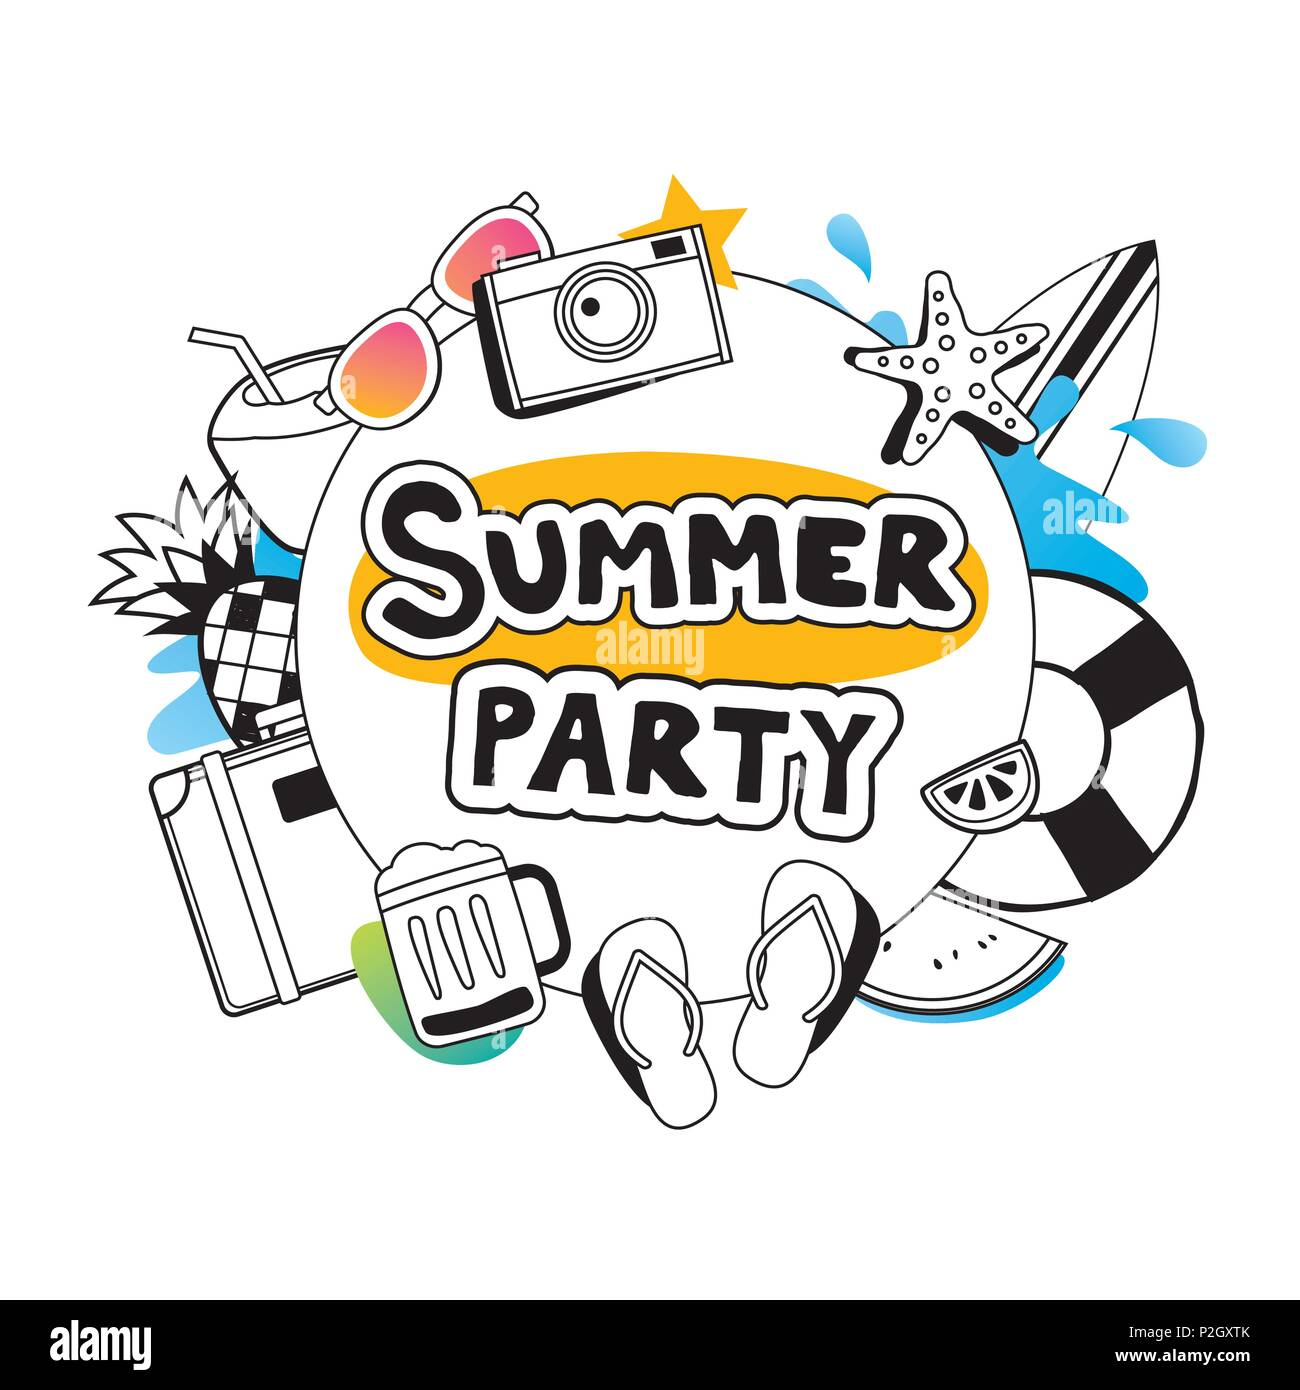 Summer party with doodle icon and design on white background. Invitation poster in hand drawn